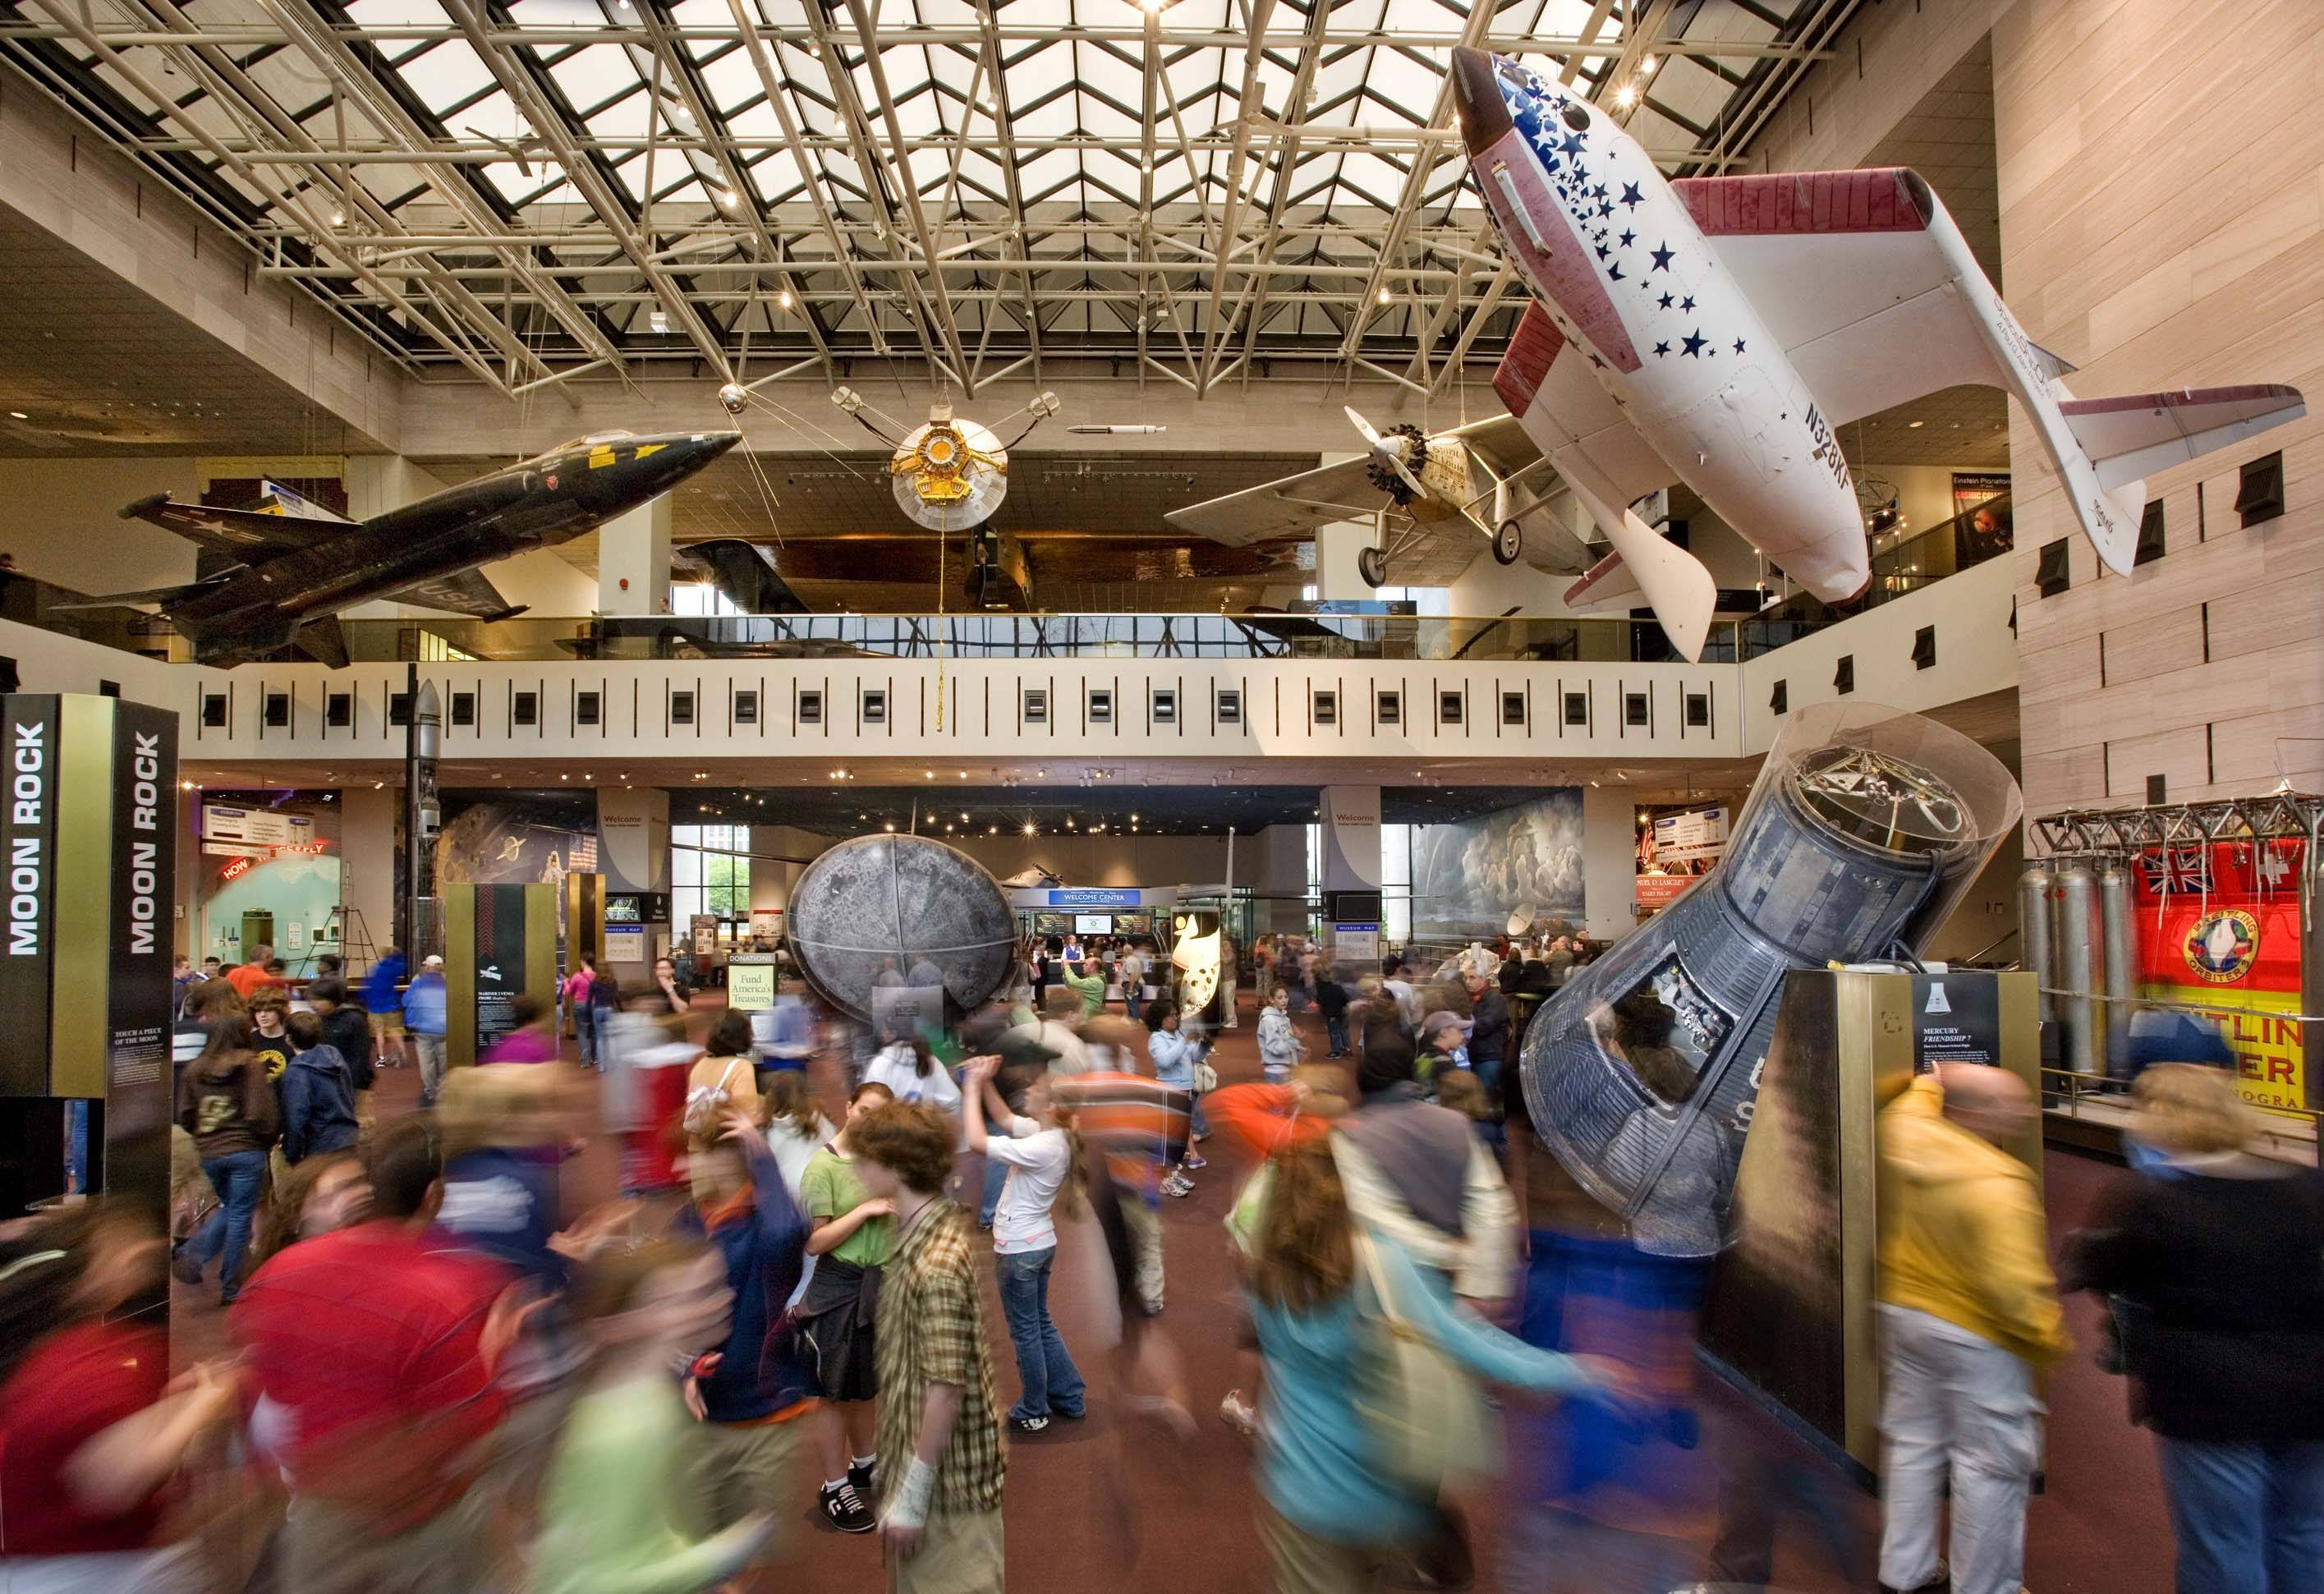 This is the Milestones of Flight Gallery, the main hall of the Smithsonian's National Air and Space Museum, in Washington. For the first time since its 1976 opening, the Smithsonian's National Air and Space Museum plans to overhaul its central exhibition area.